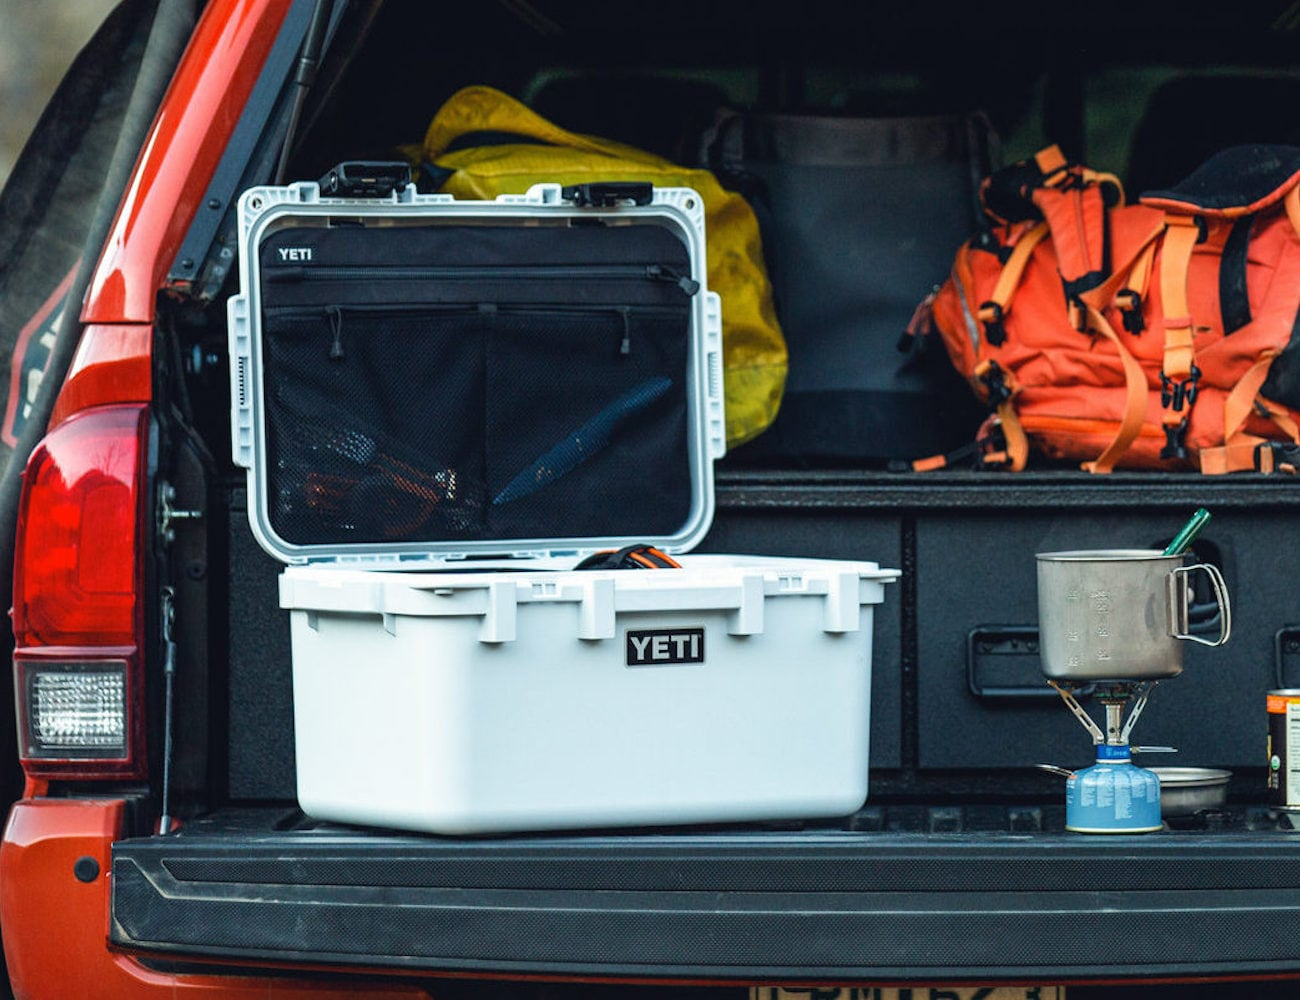 Yeti LoadOut GoBox 30 Nearly Indestructible Gear Case keeps all your outdoor essentials organized